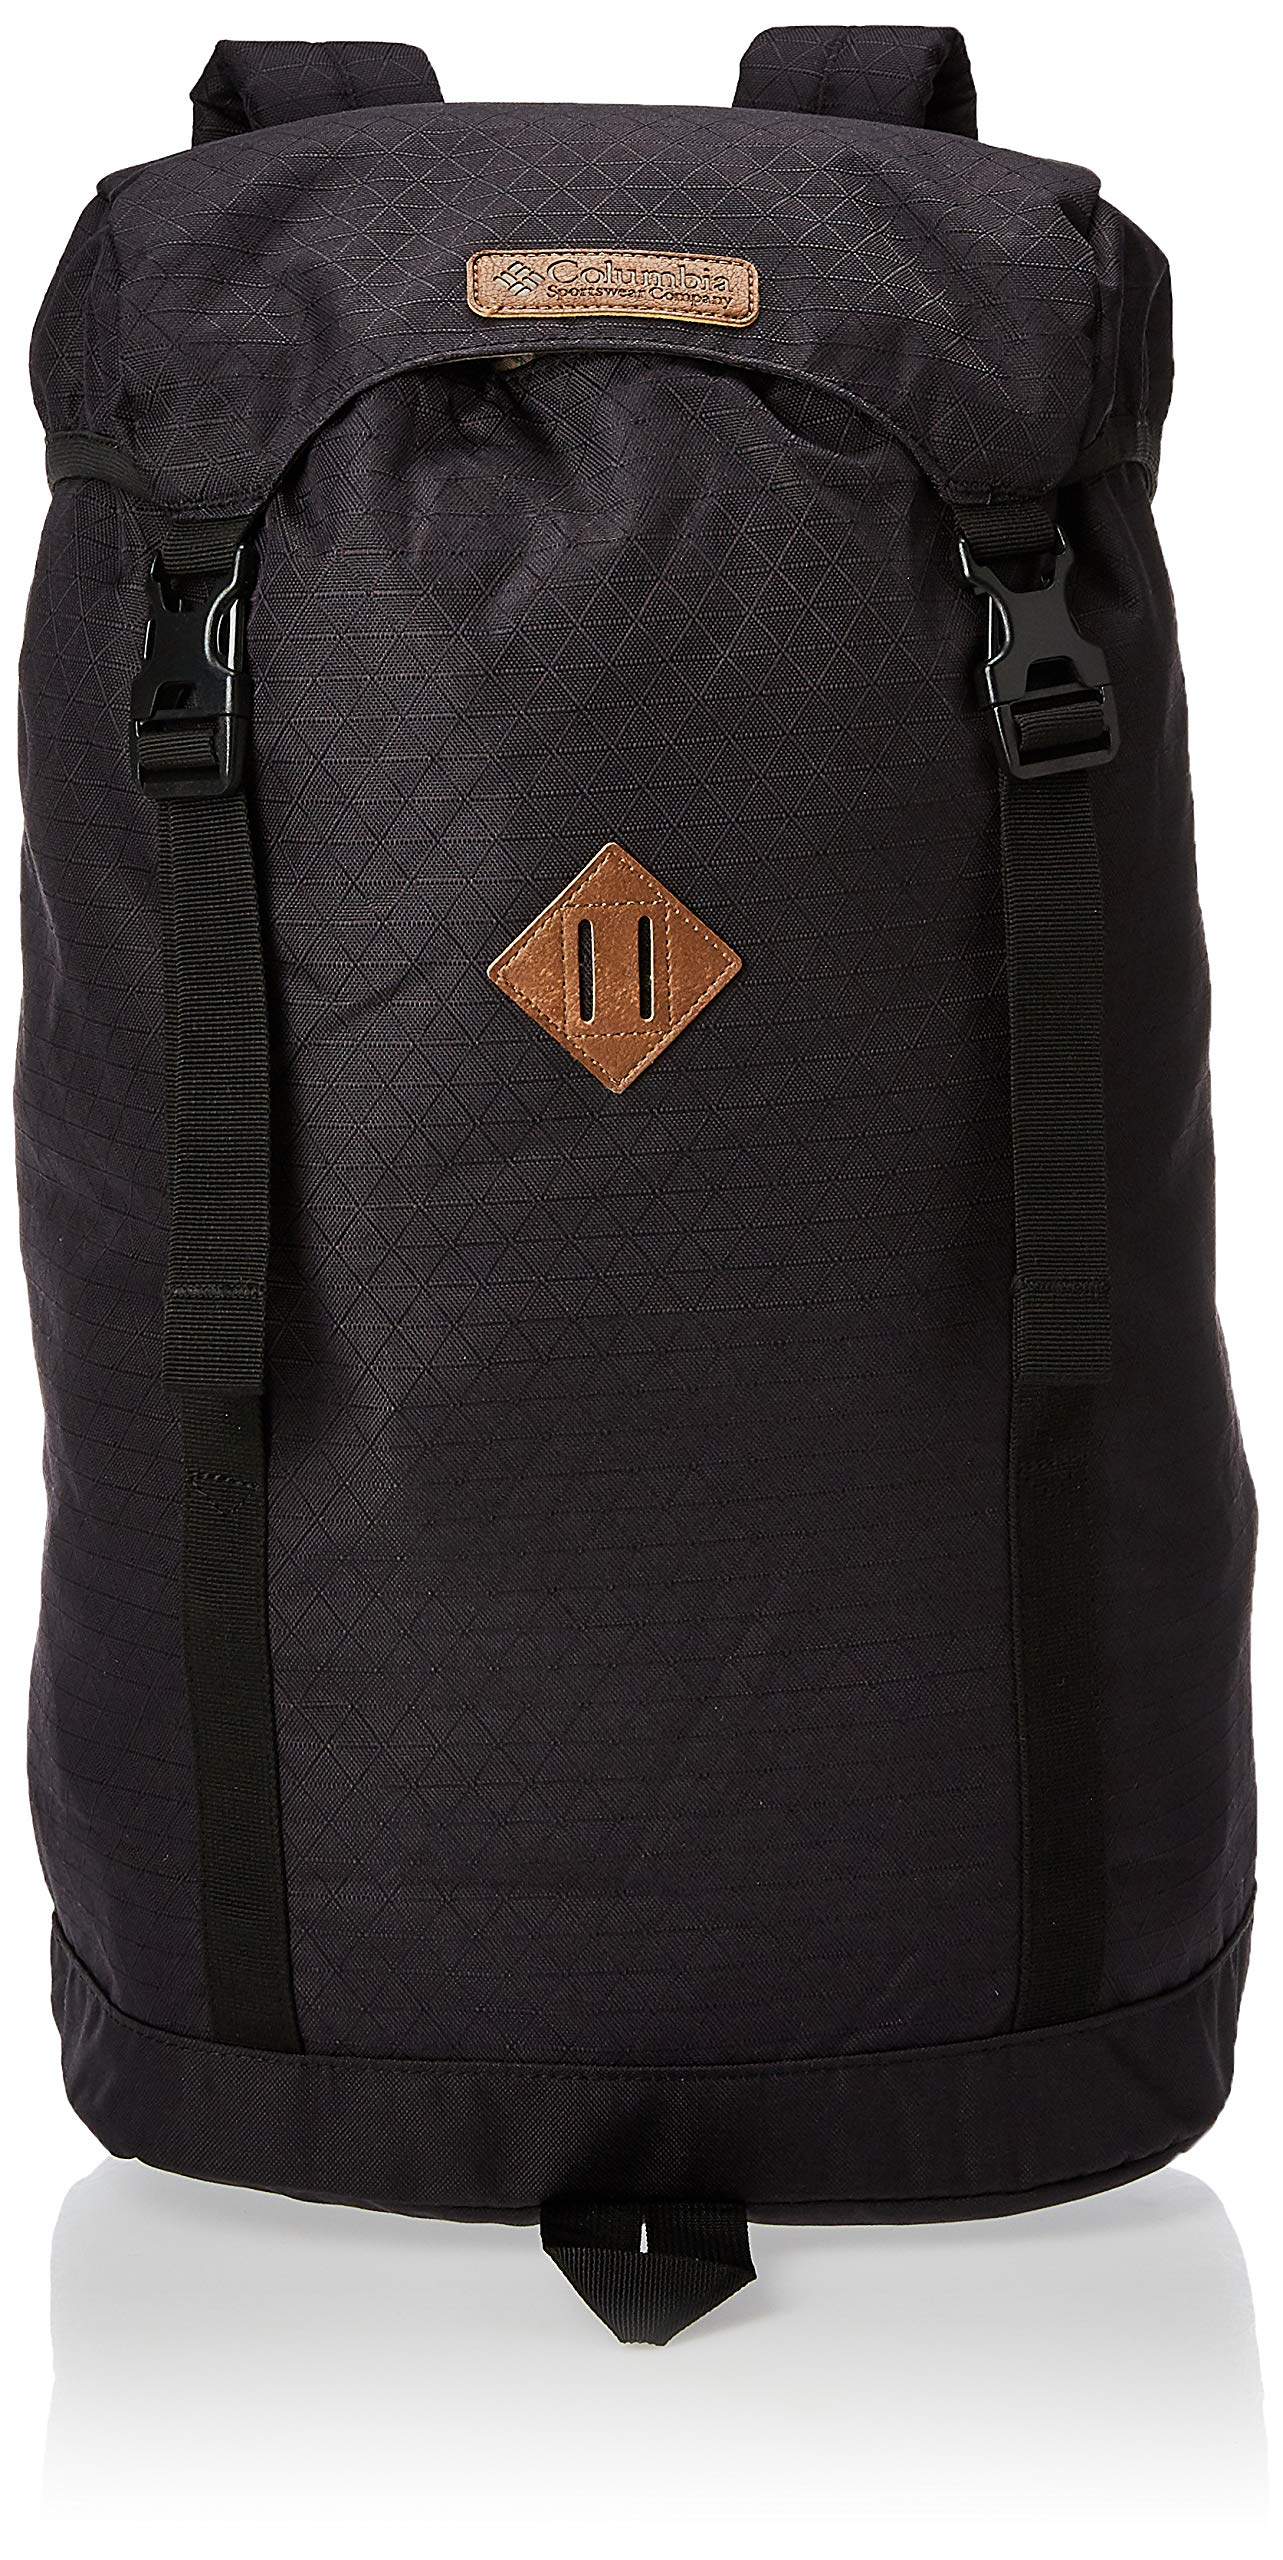 Columbia Daypack / Rucksack, Classic Outdoor 25L